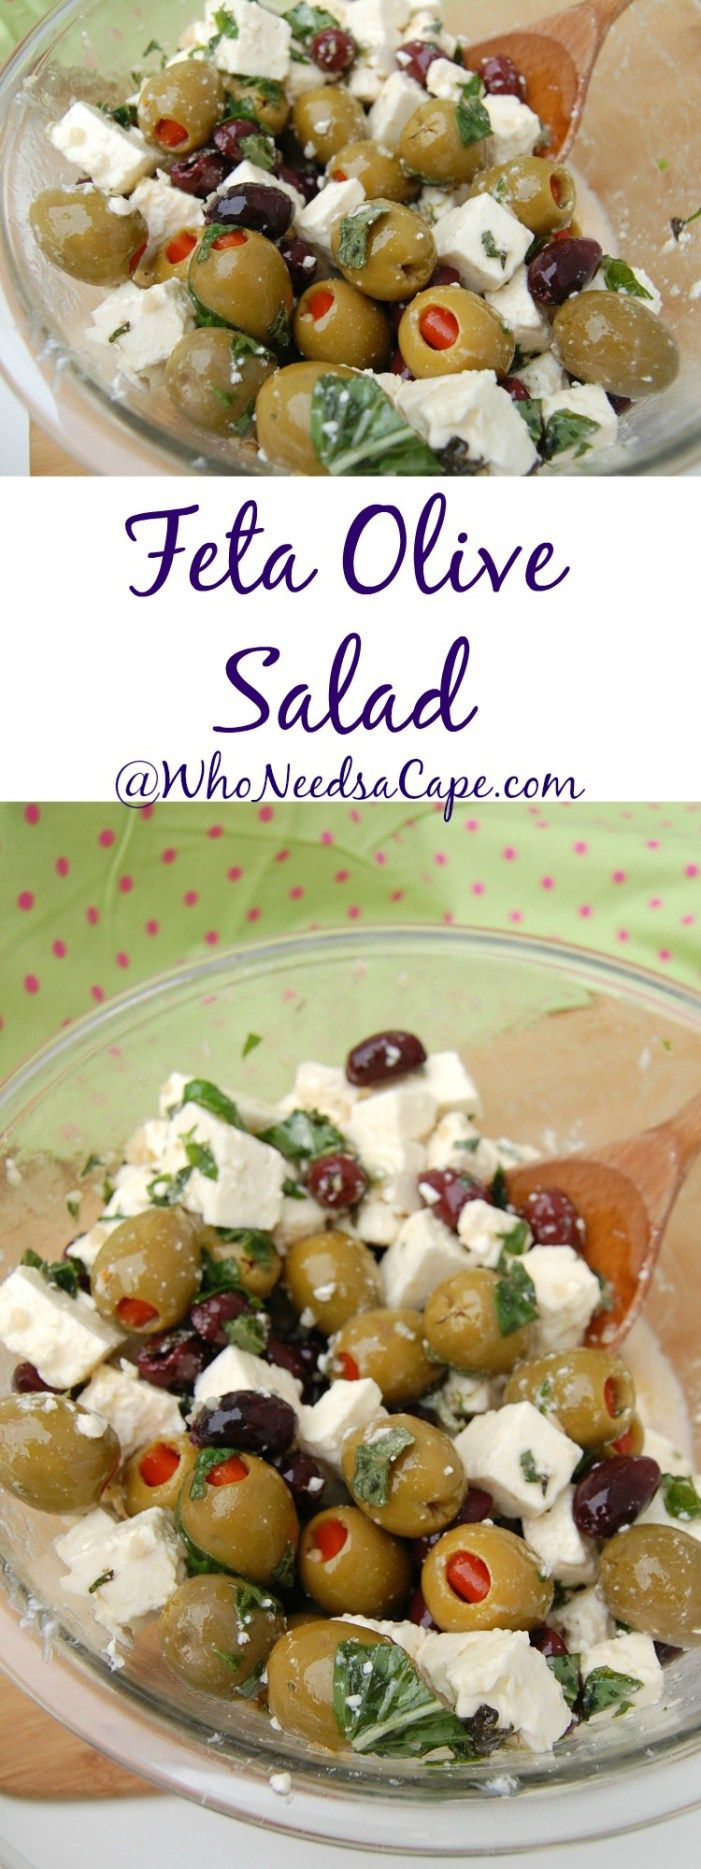 Feta Olive Salad is a great combination! Perfect side dish for any BBQ, Picnic, Or just a Saturday night!